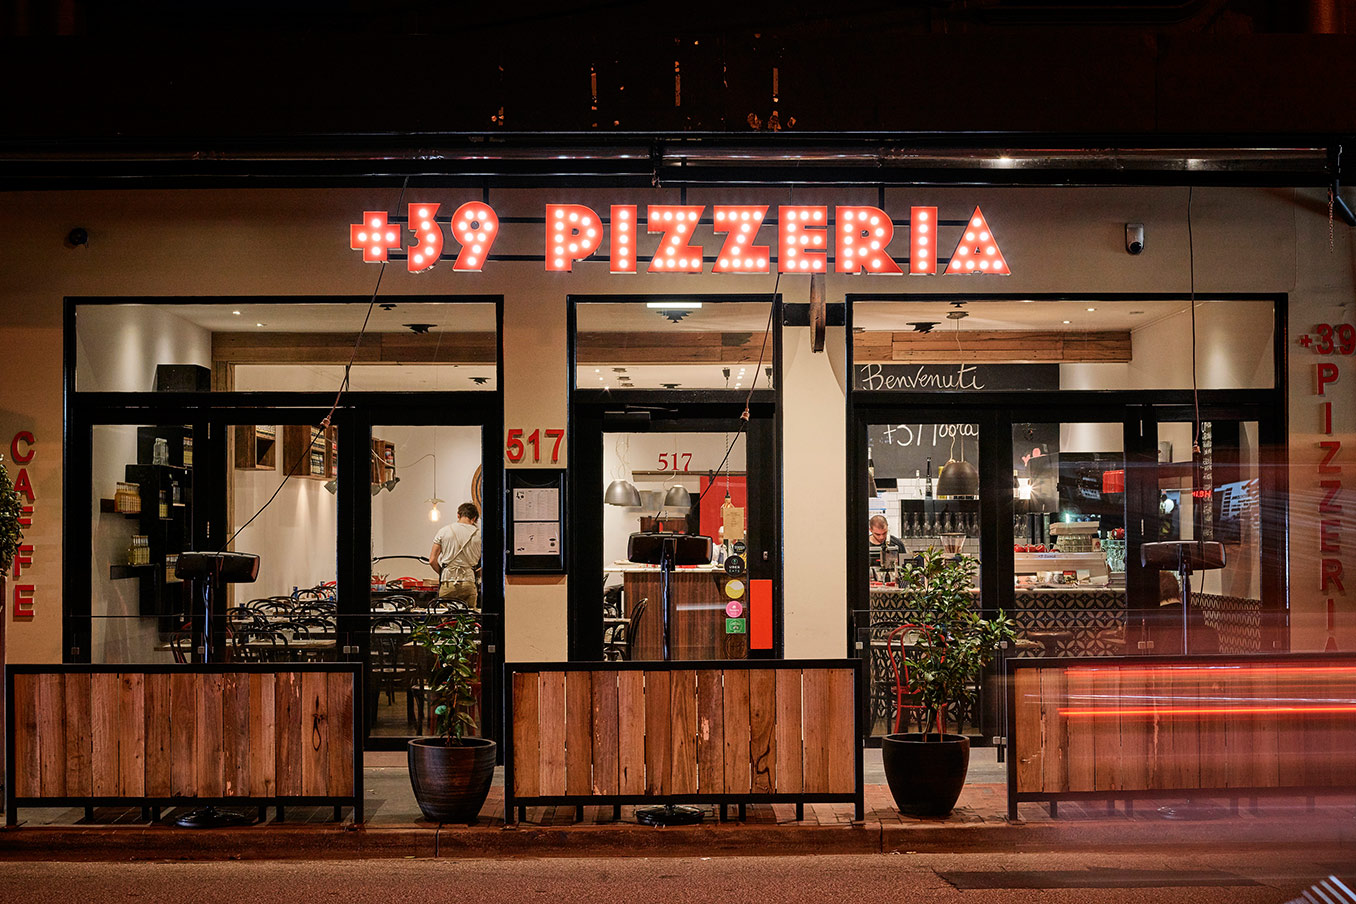 Plus 39 Pizzeria toorak location front facade